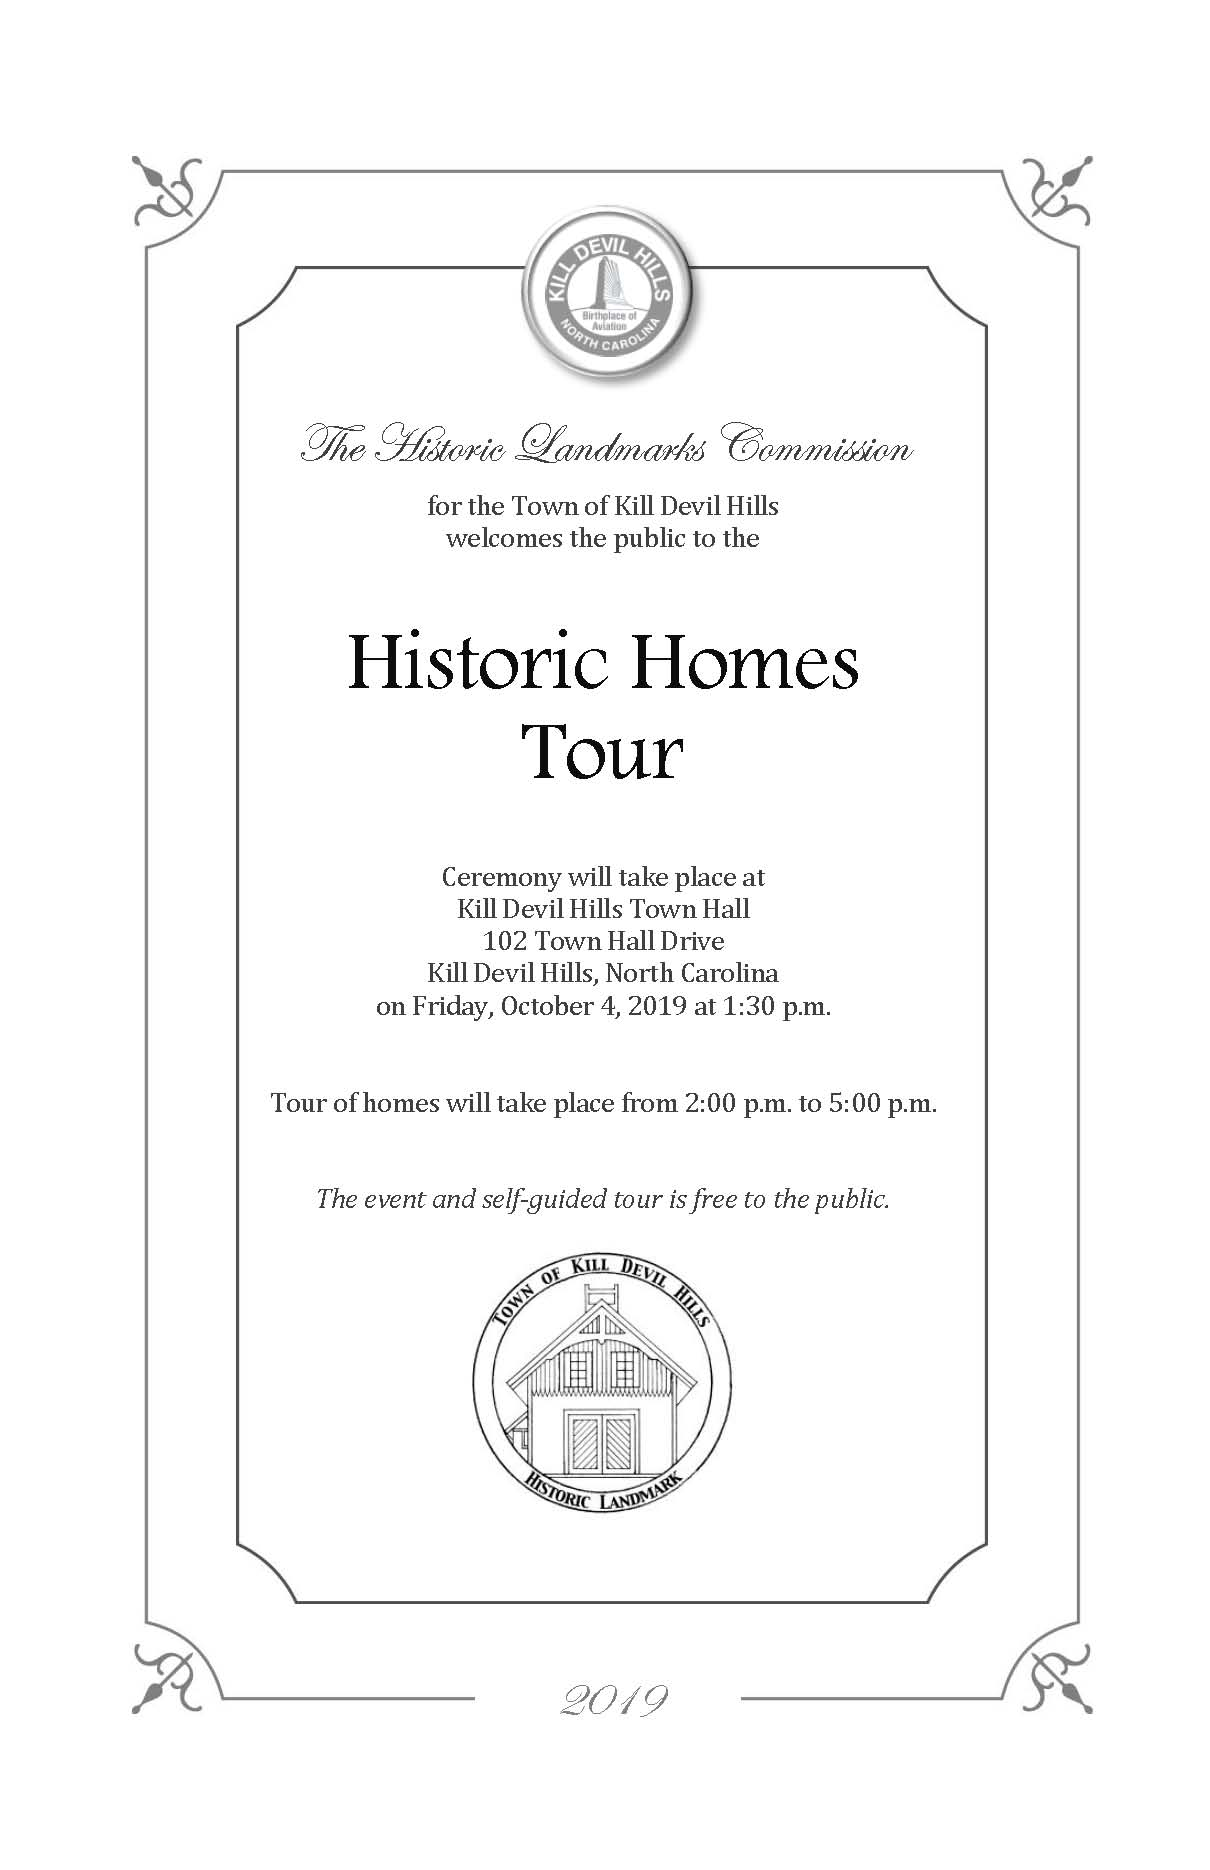 KDH HLC Open Homes Tour 2019